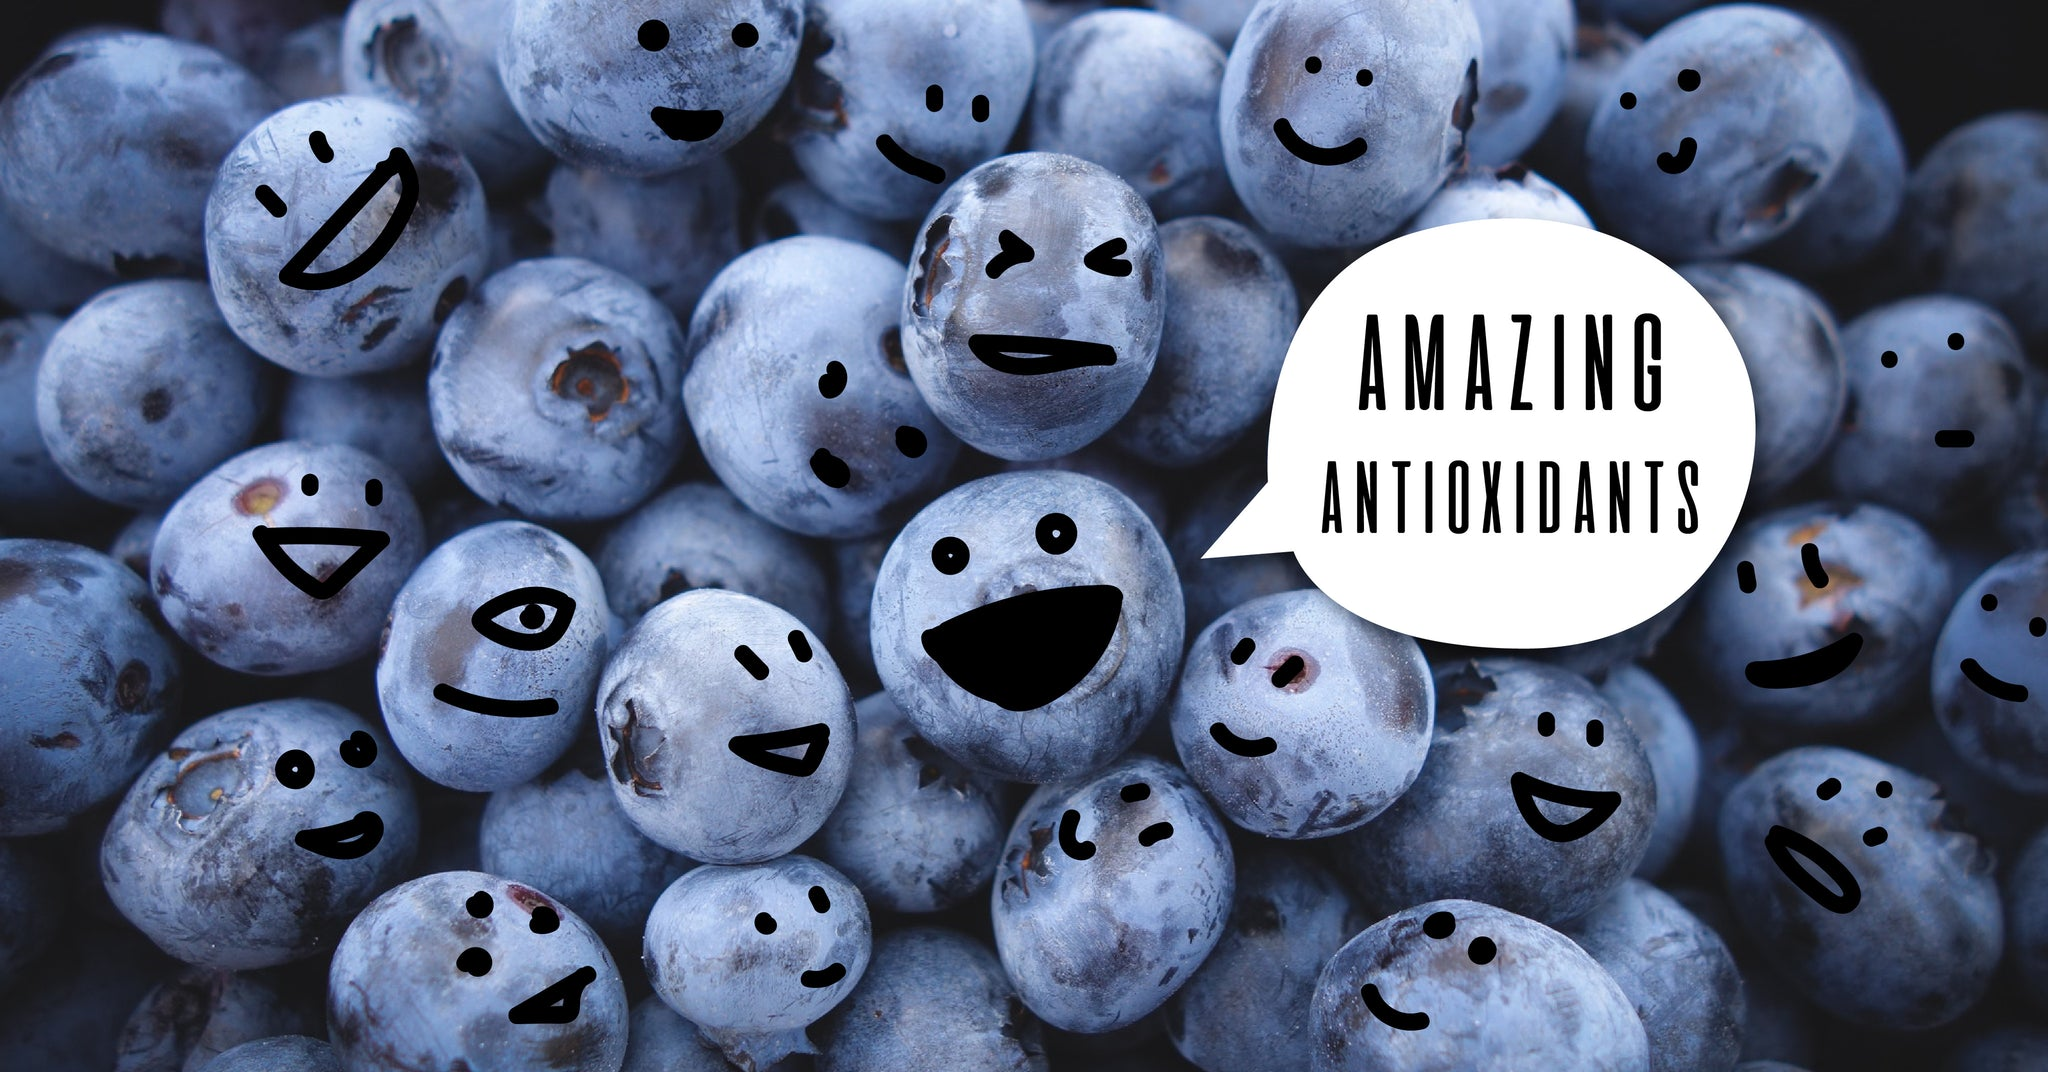 Amazing Antioxidants